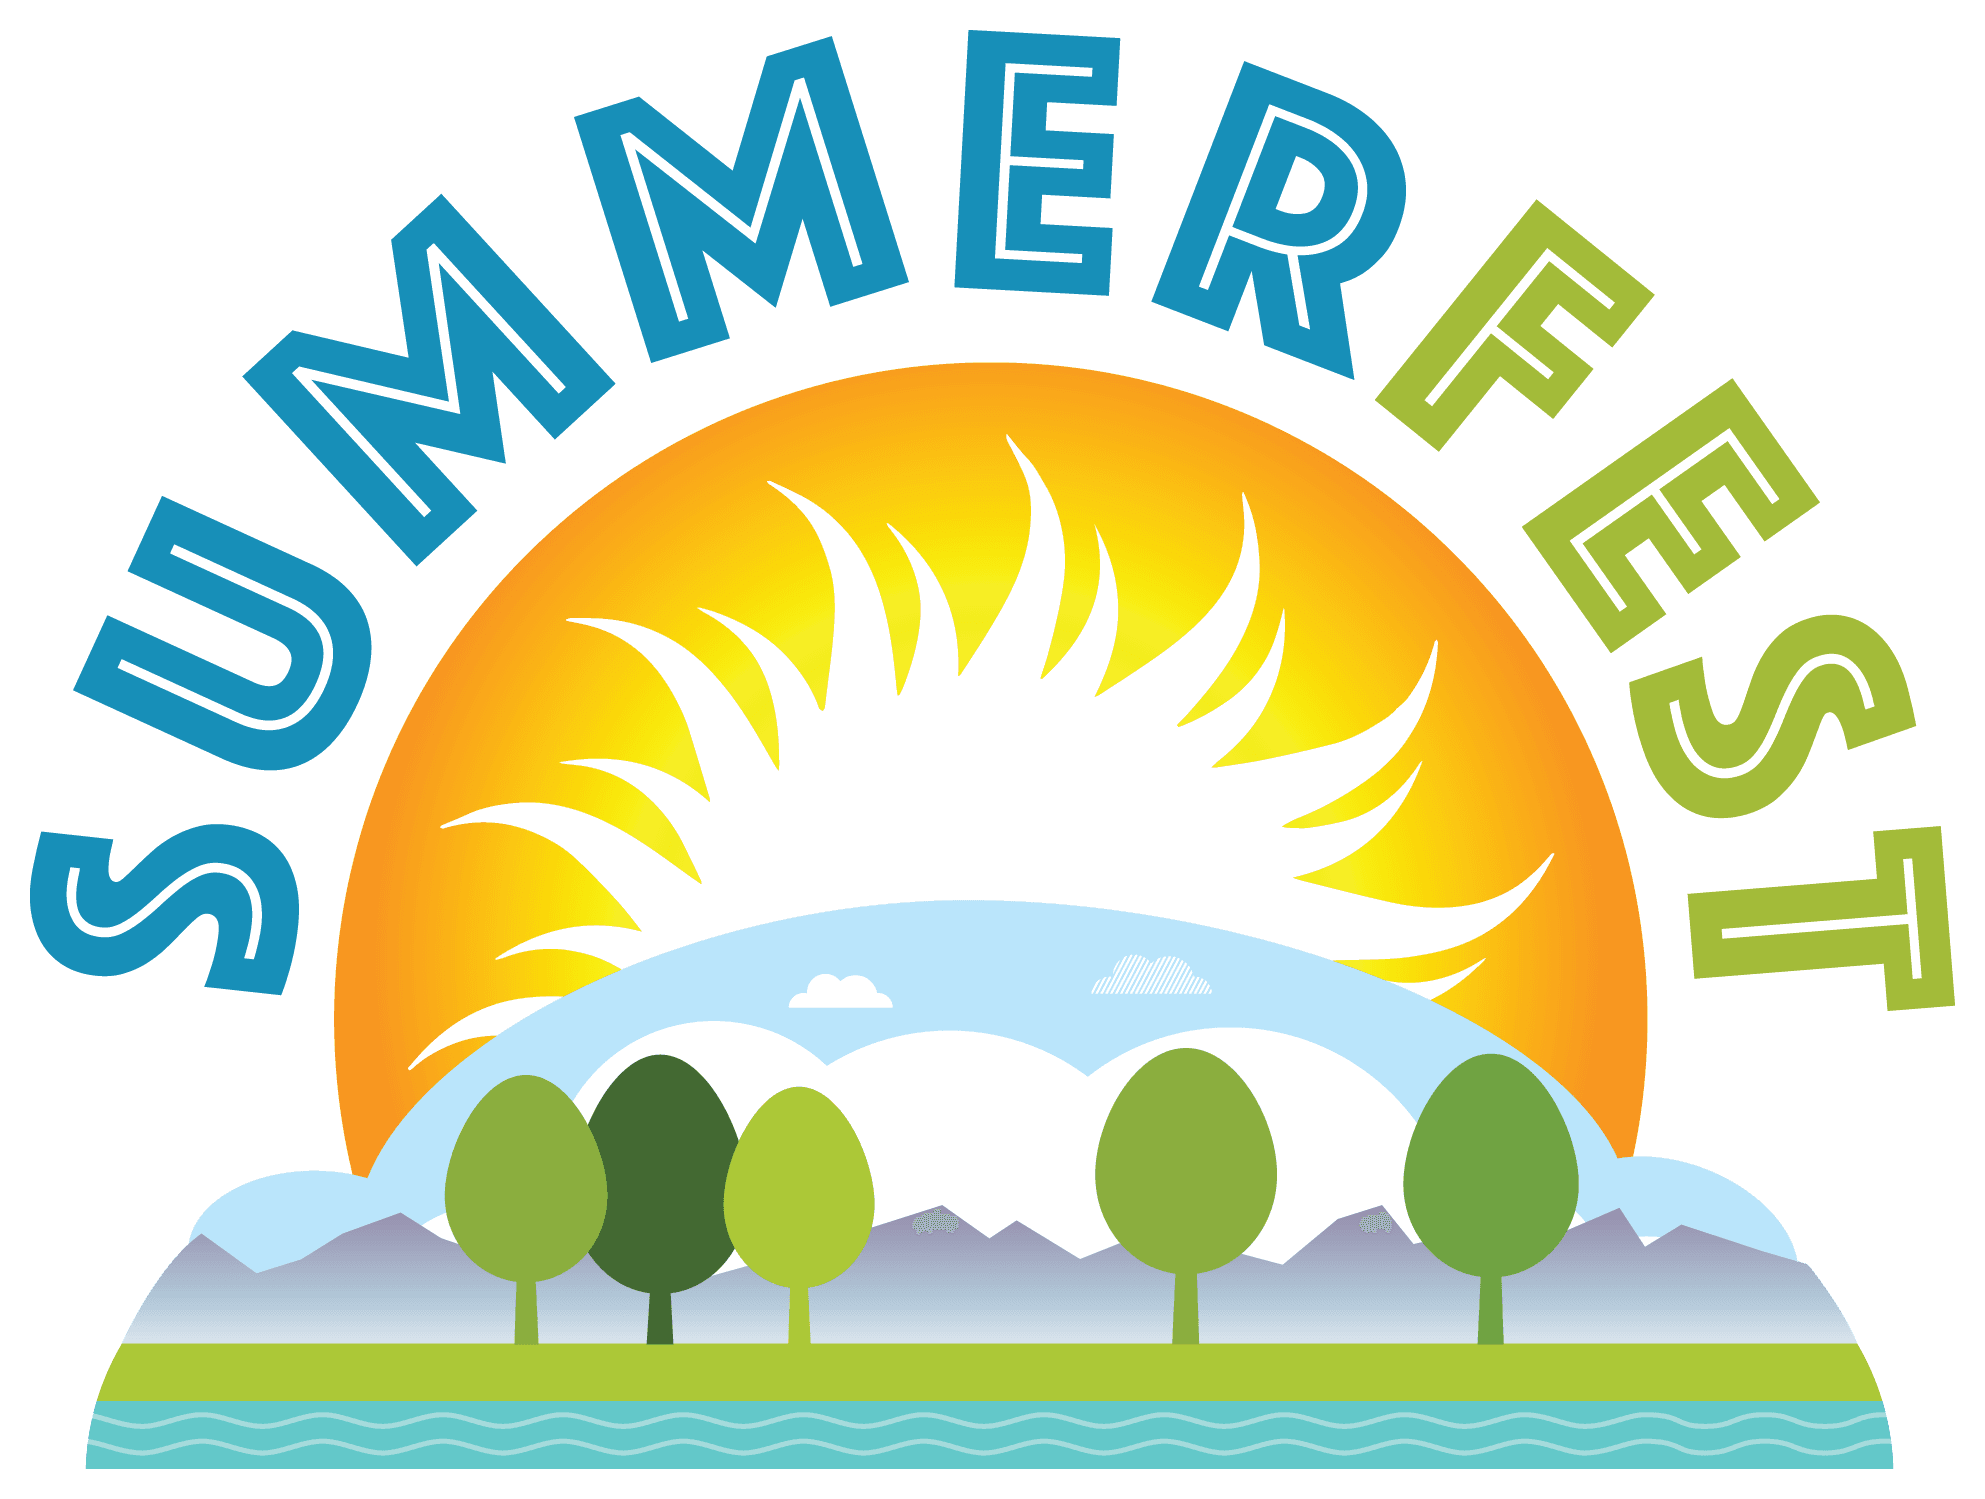 SummerfestLogo_Transparent